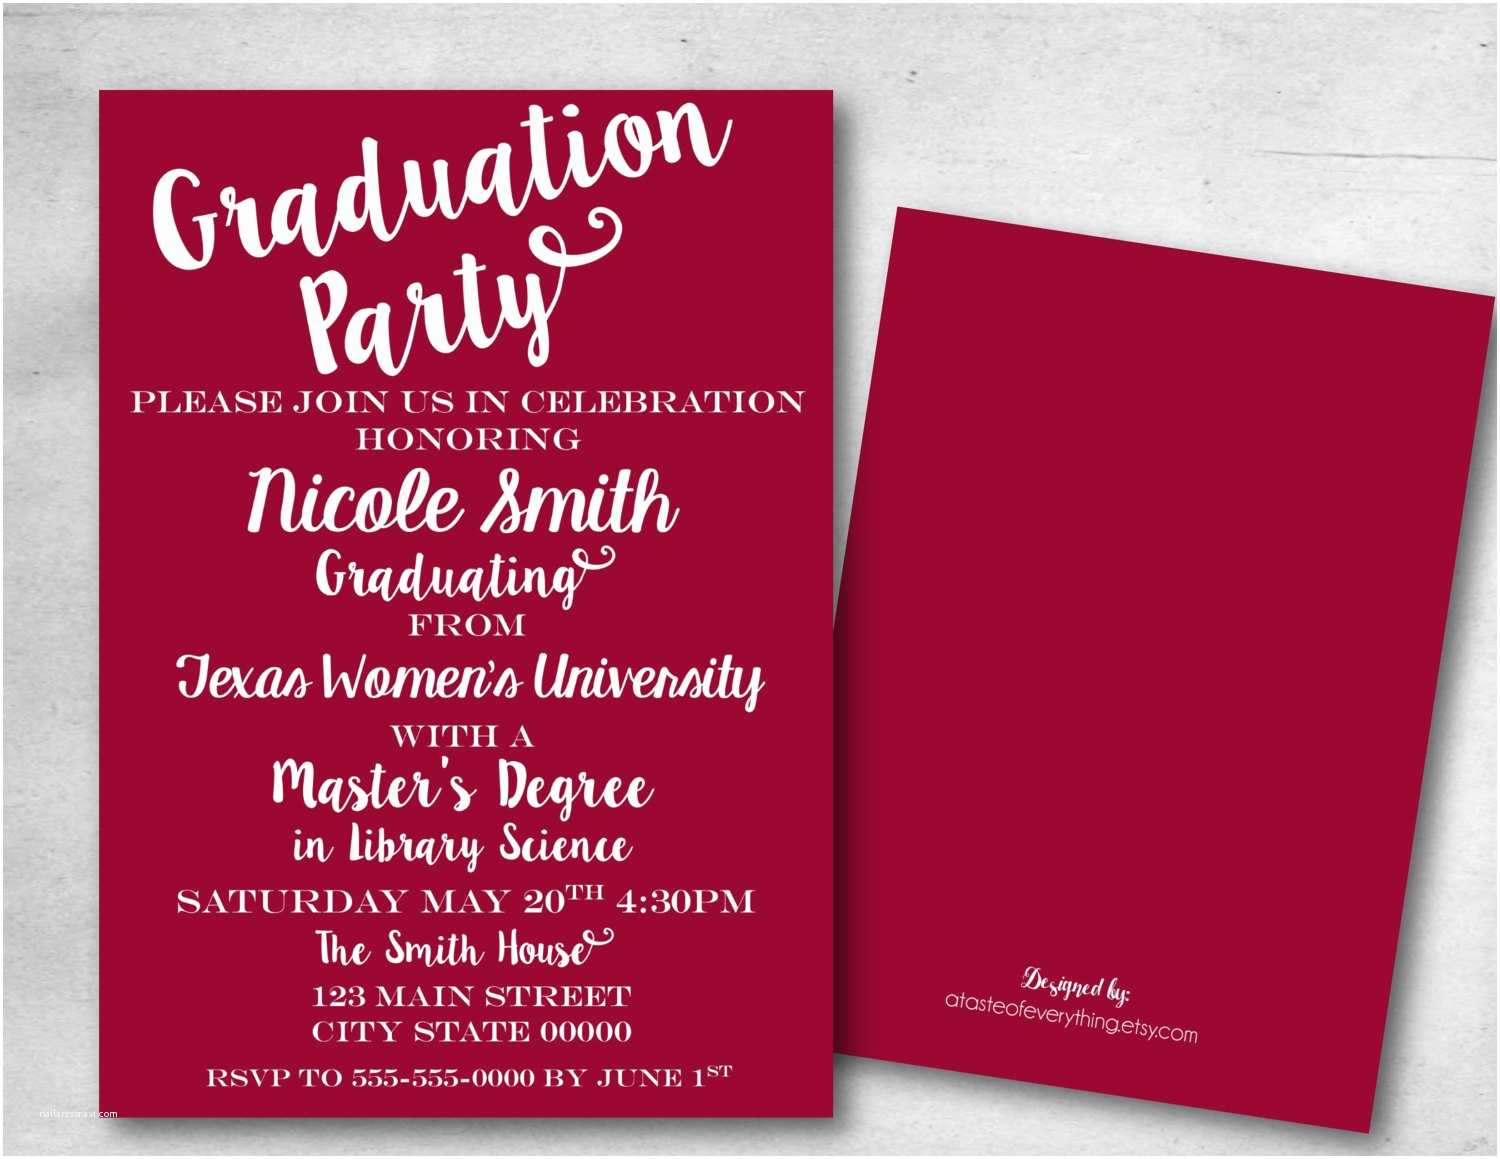 Graduation Party Invitations Graduation Party Invitation Save the Date College Masters Diy